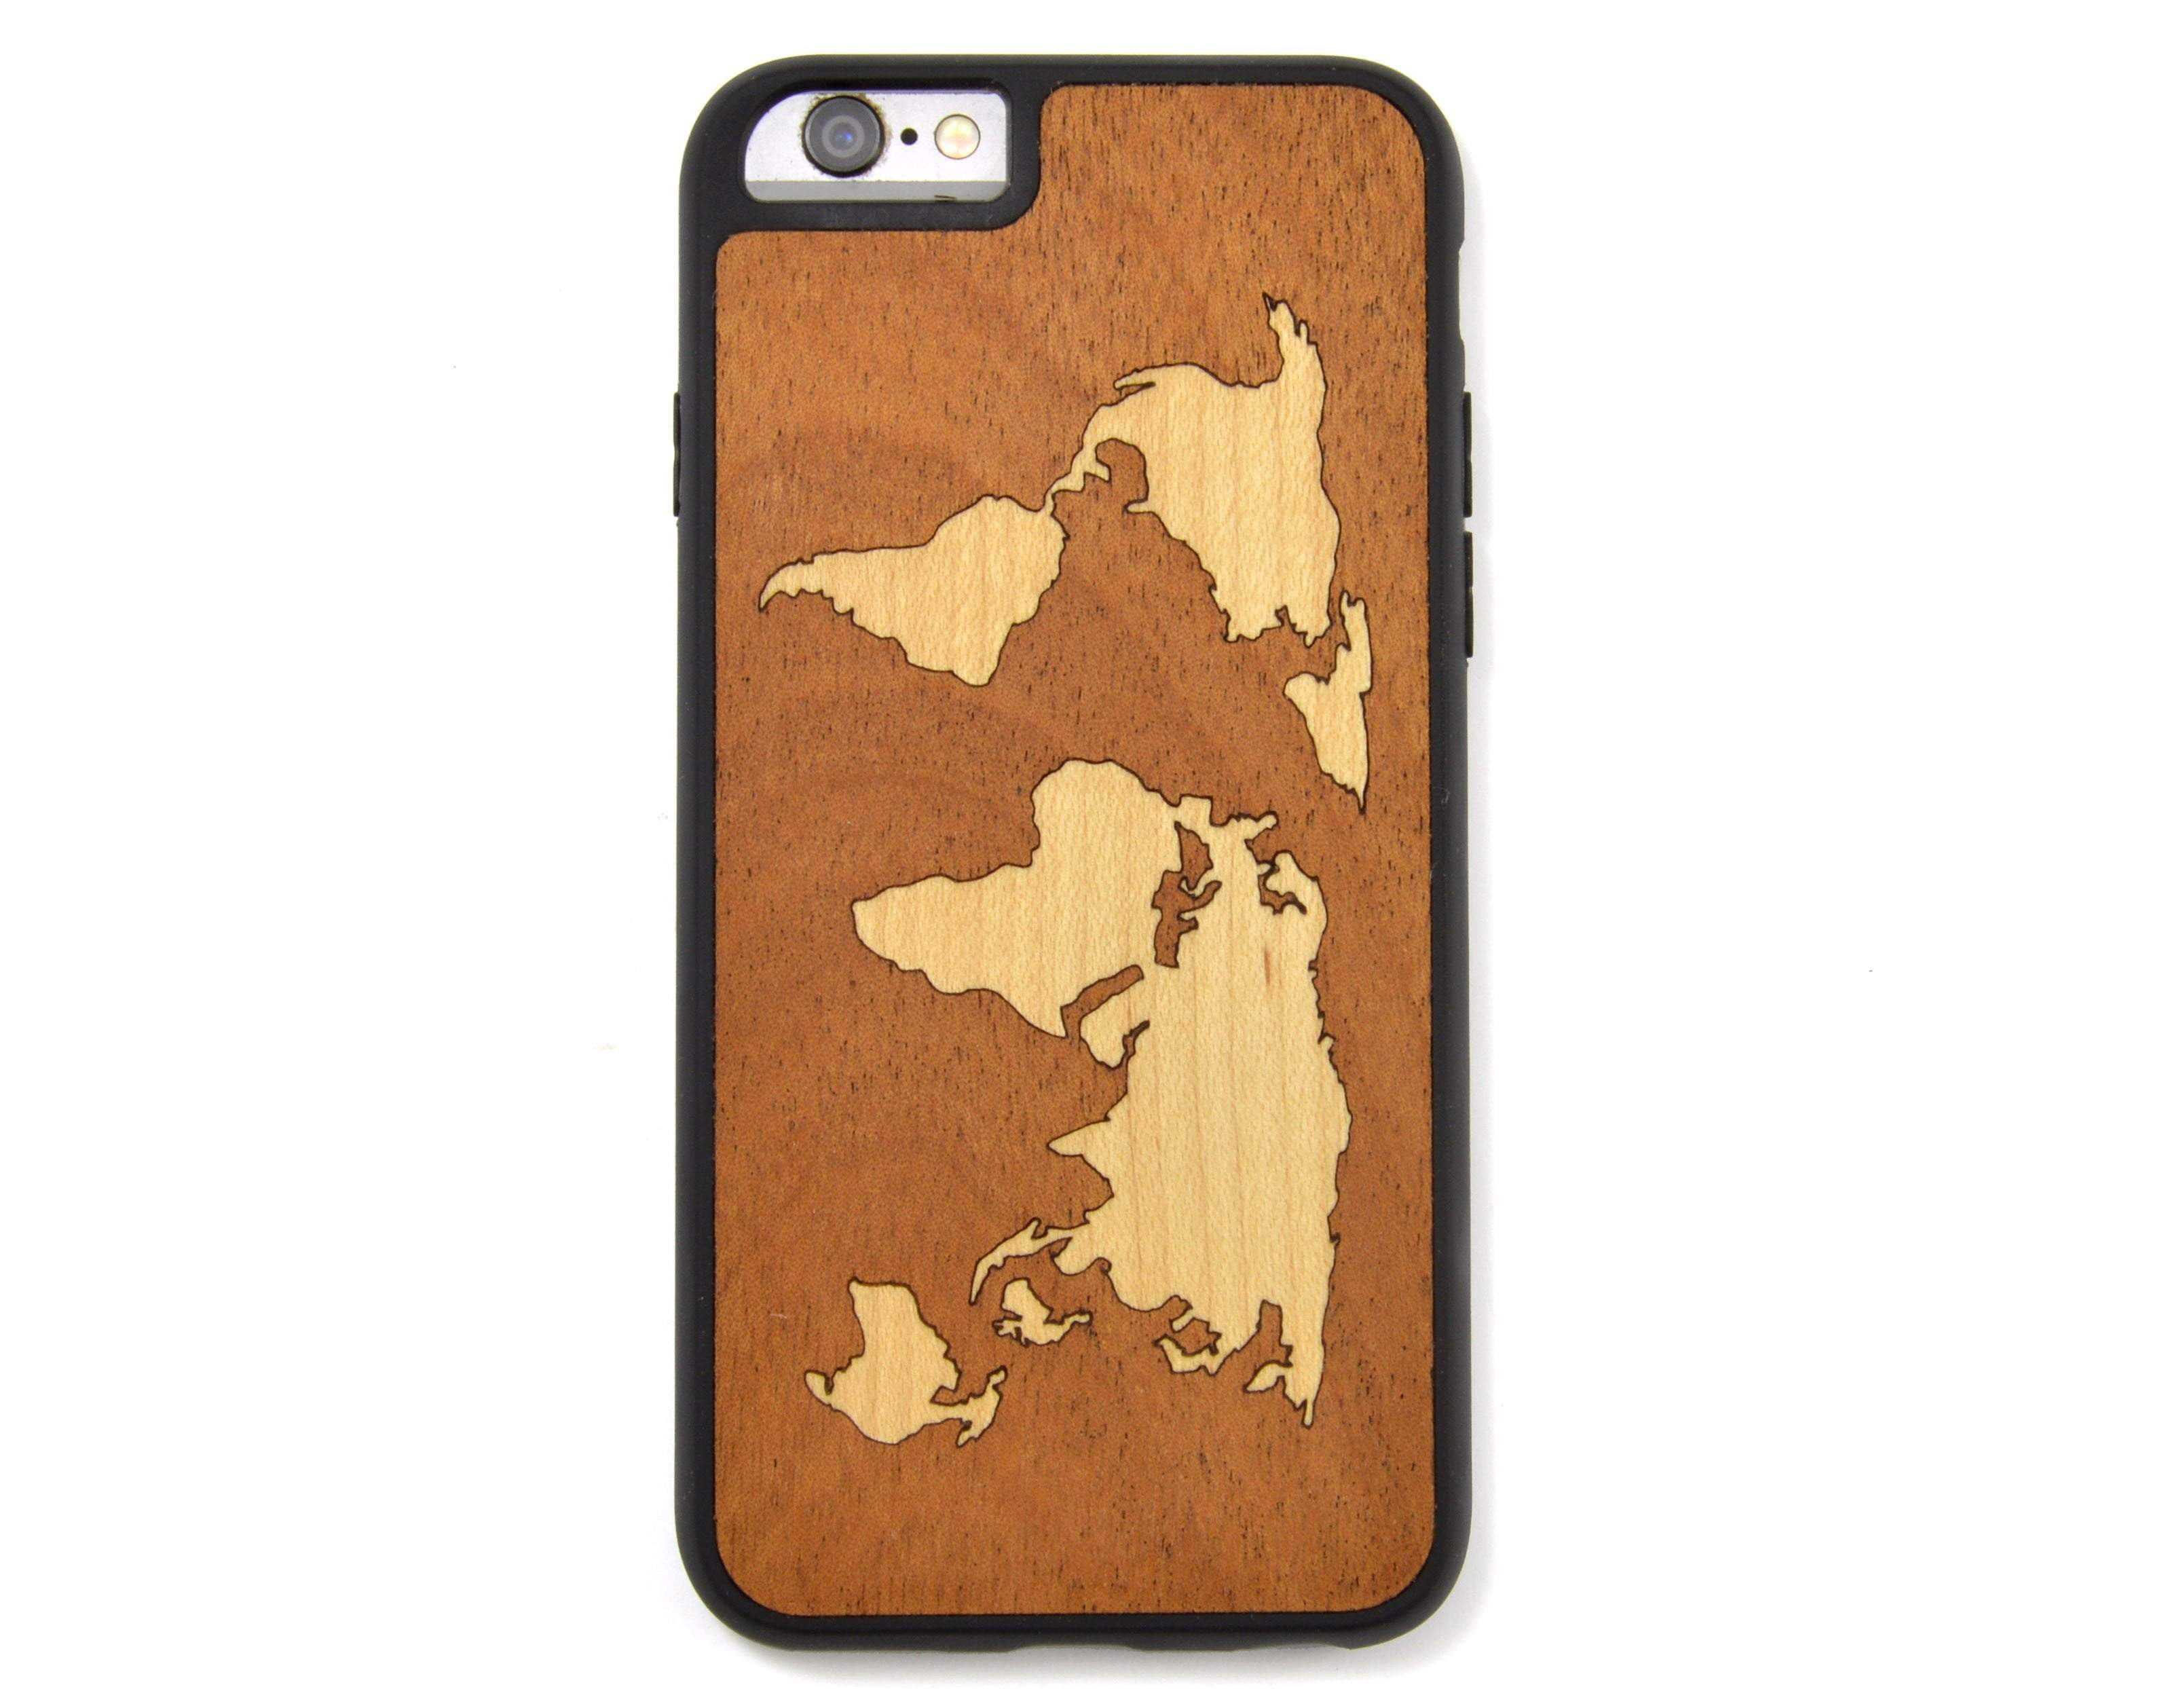 Atlas iPhone Case - Zip & Mos